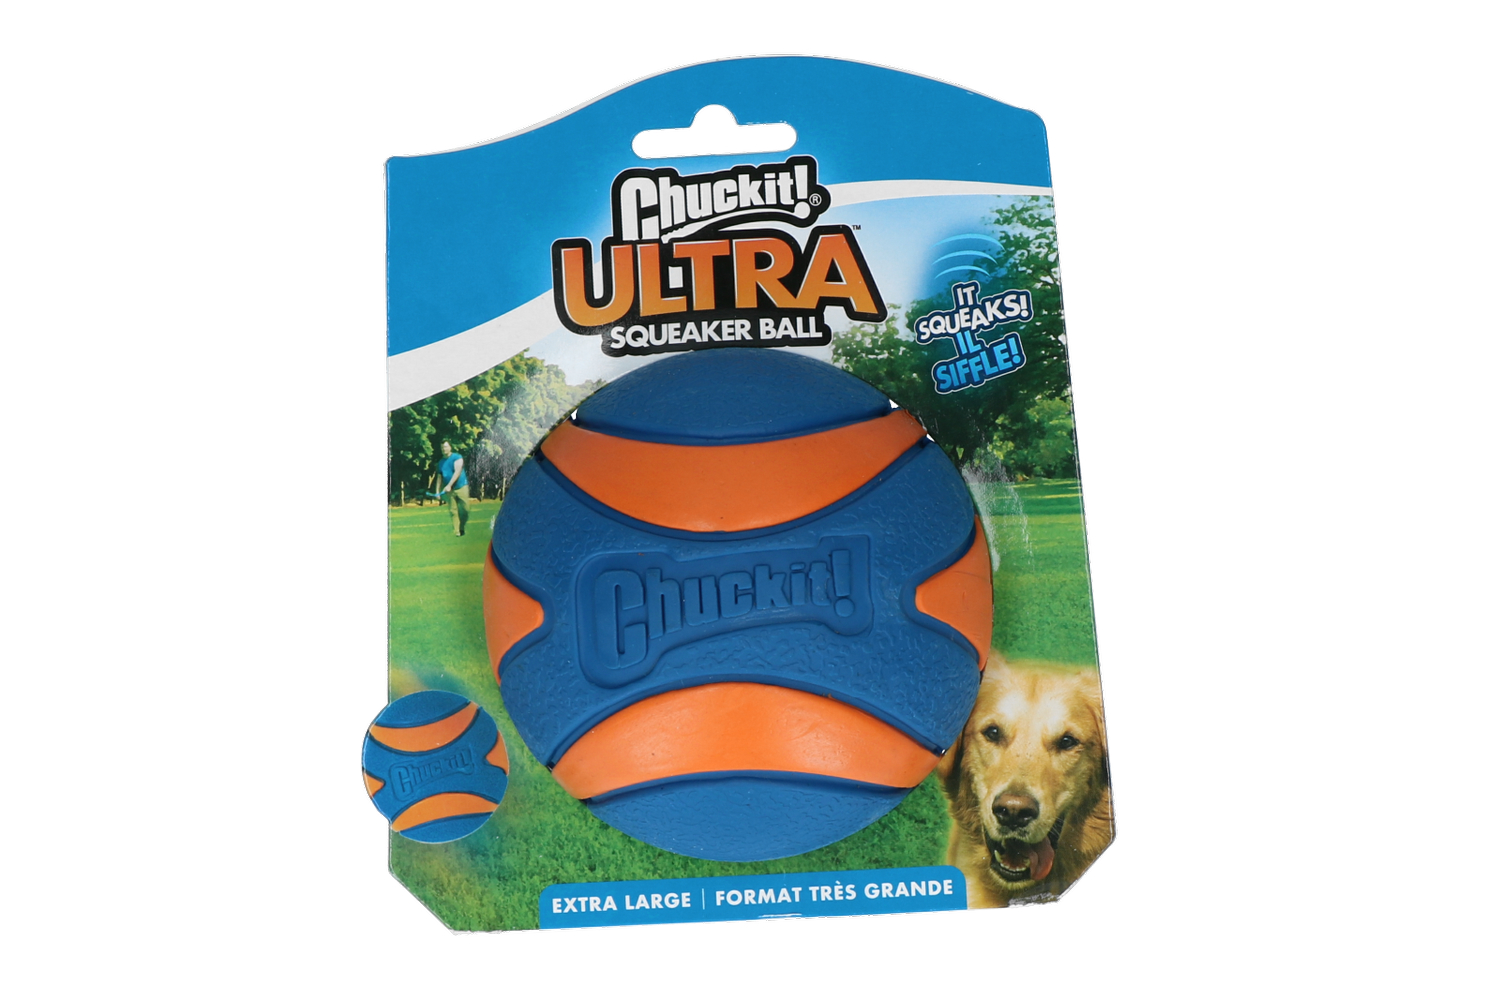 Chuckit-Ultra-Squeaker-Ball-mit-Verpackung-Extra-Large